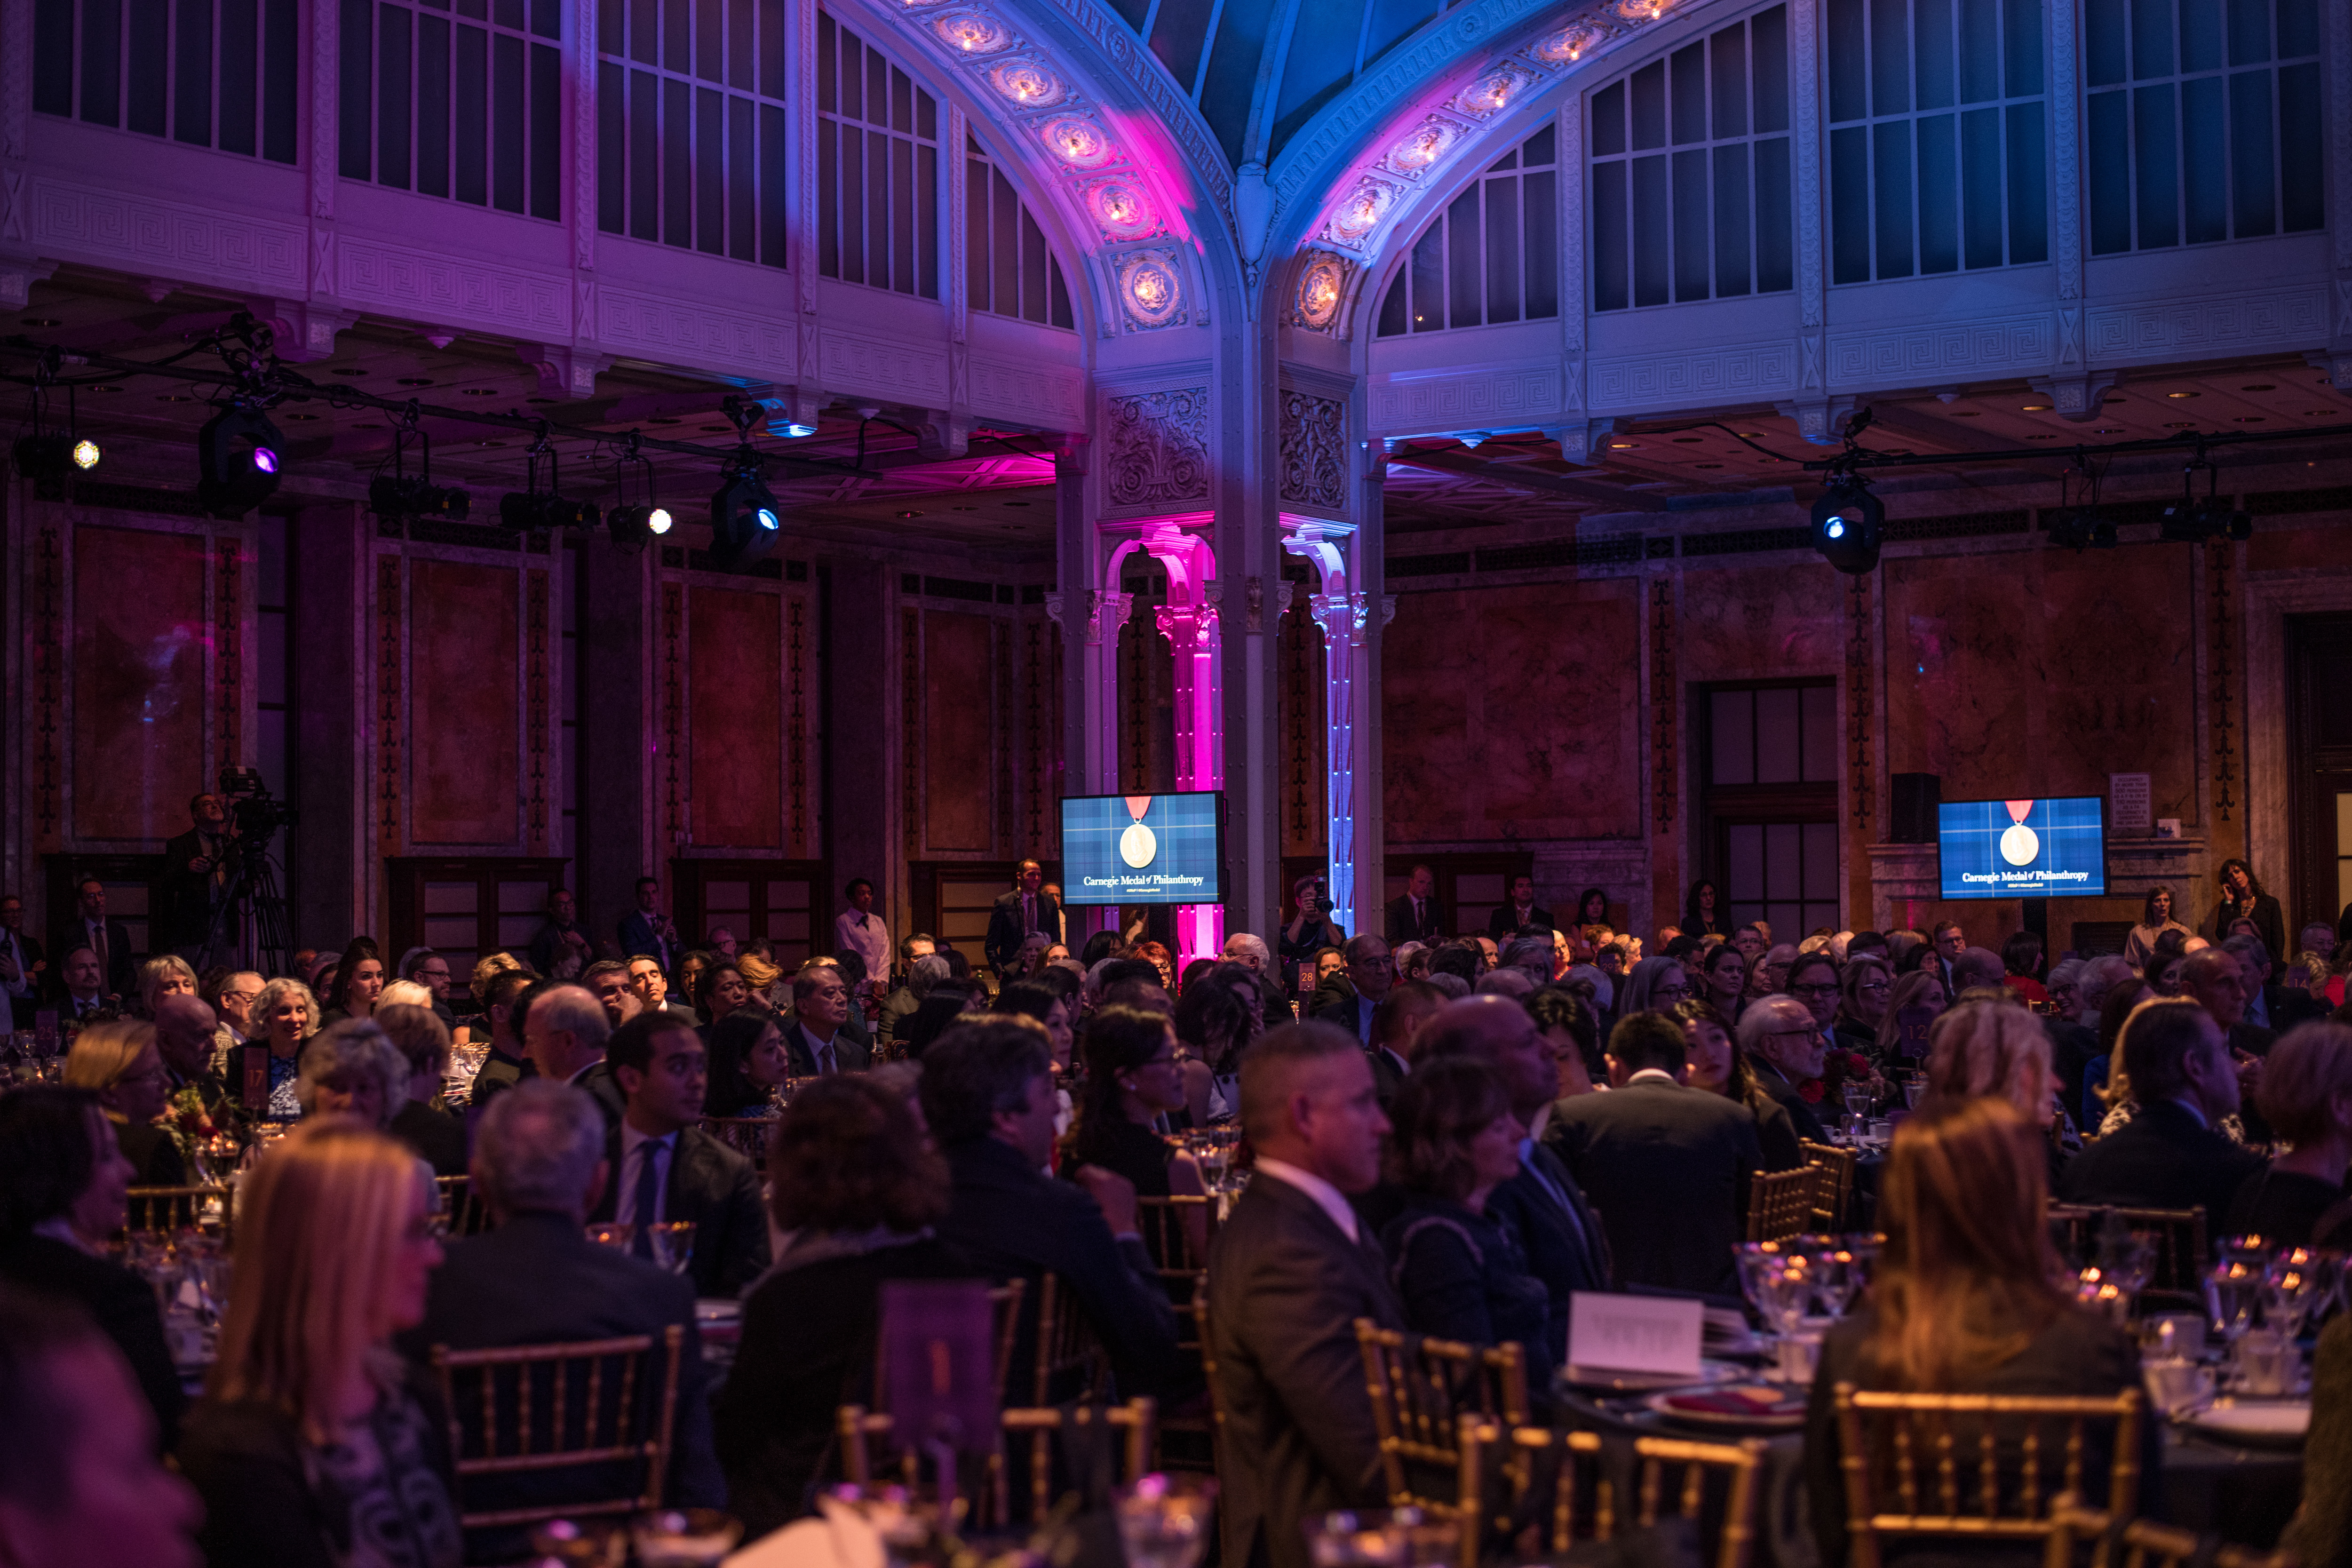 A crowd of 300 attended the Carnegie ceremonies at the New York Public Library. (Andrew Renneisen for The Inquirer)